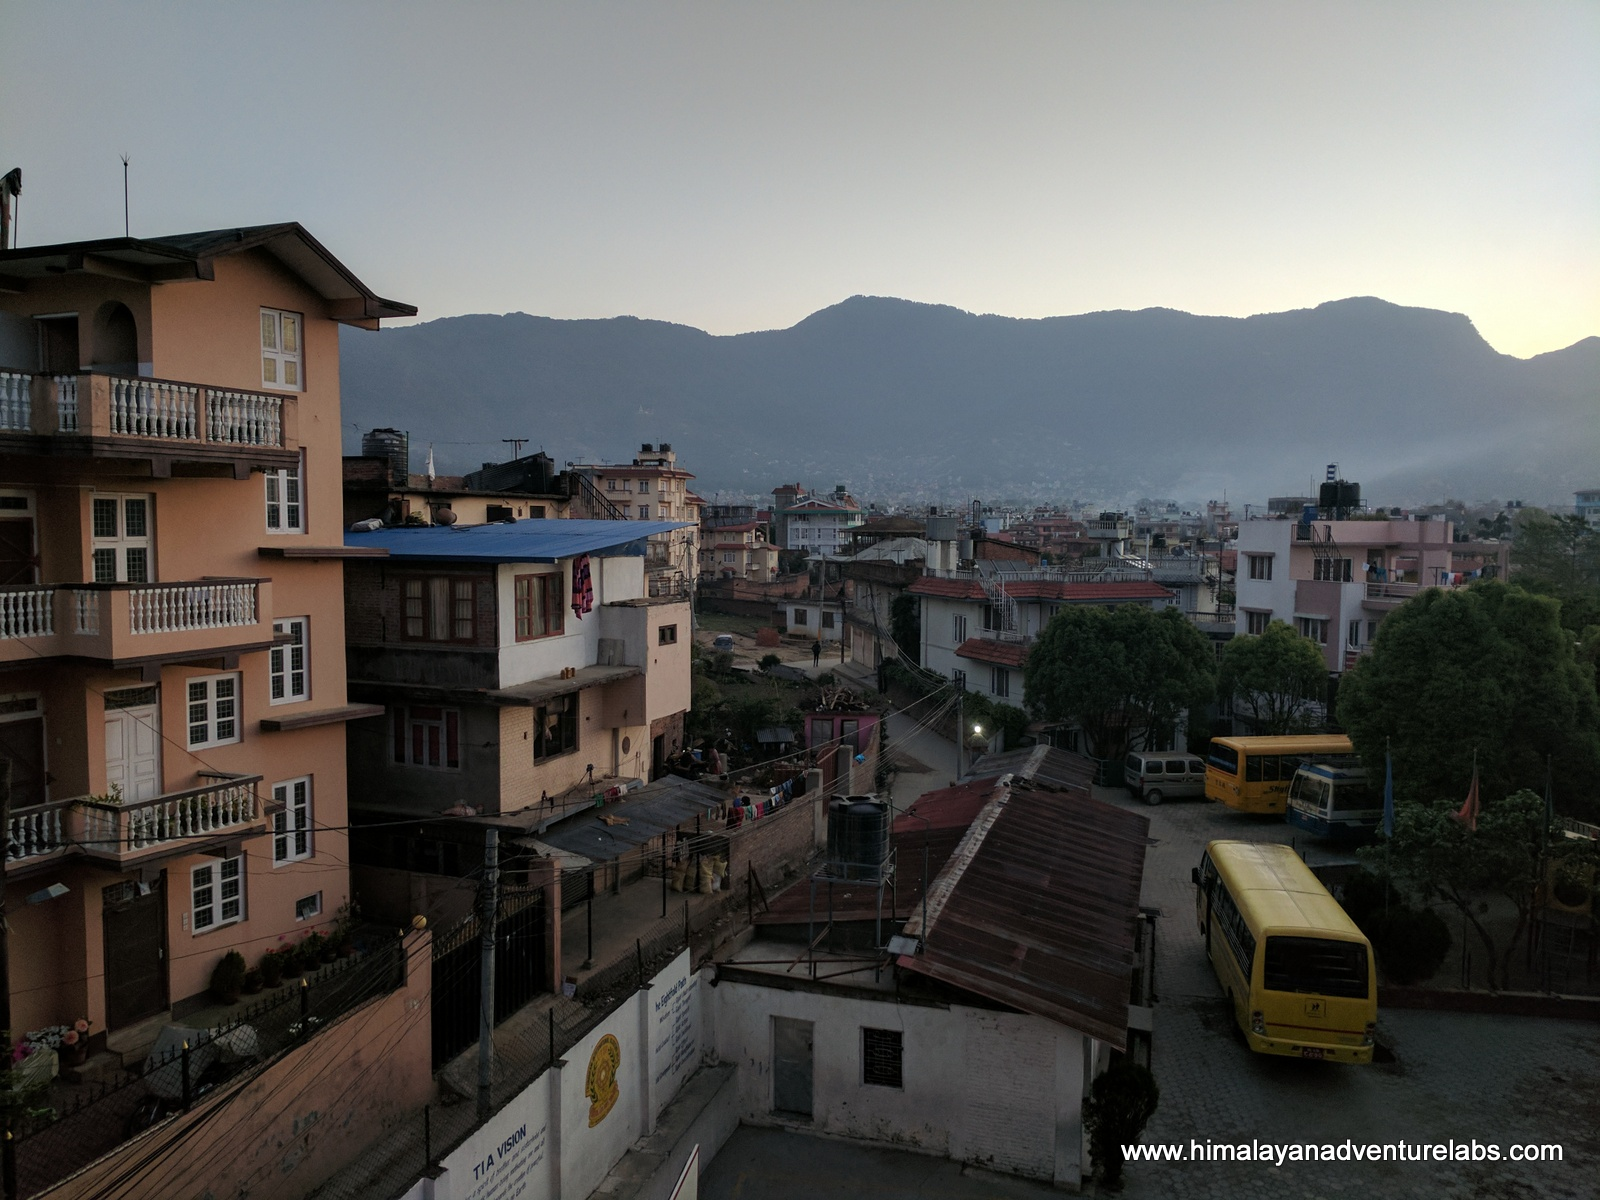 View of the first mountains we need to cross: Shiva Puri from Kathmandu